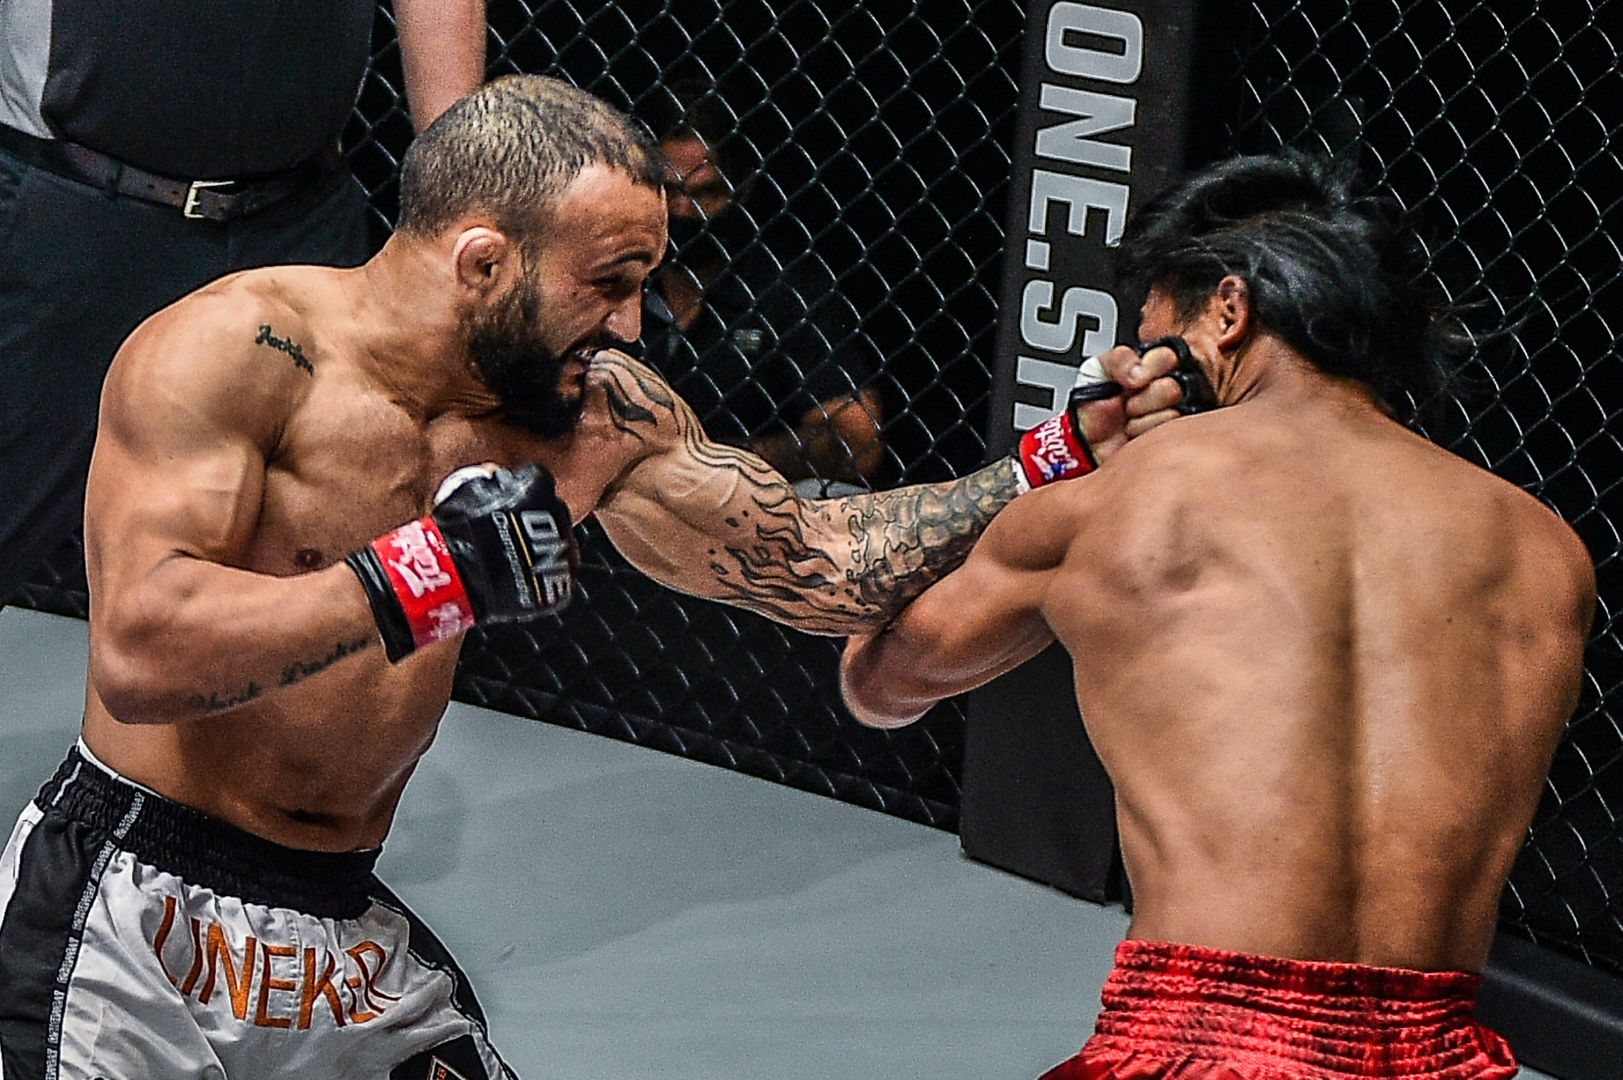 MMA fighter John Lineker squares off against Kevin Belingon in the main event of ONE: INSIDE THE MATRIX III